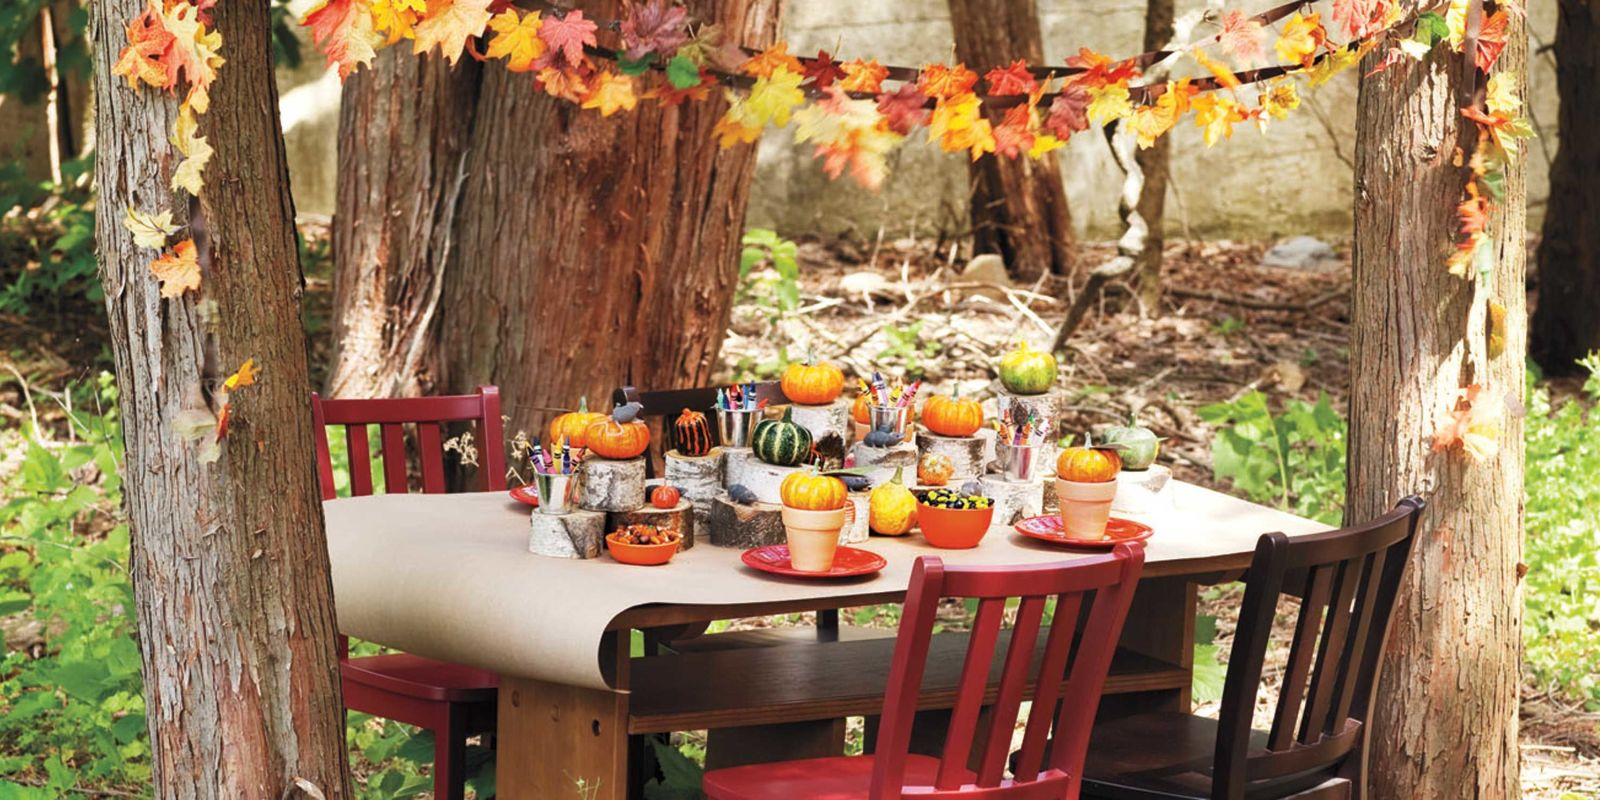 Kids Craft Ideas For A Backyard Party